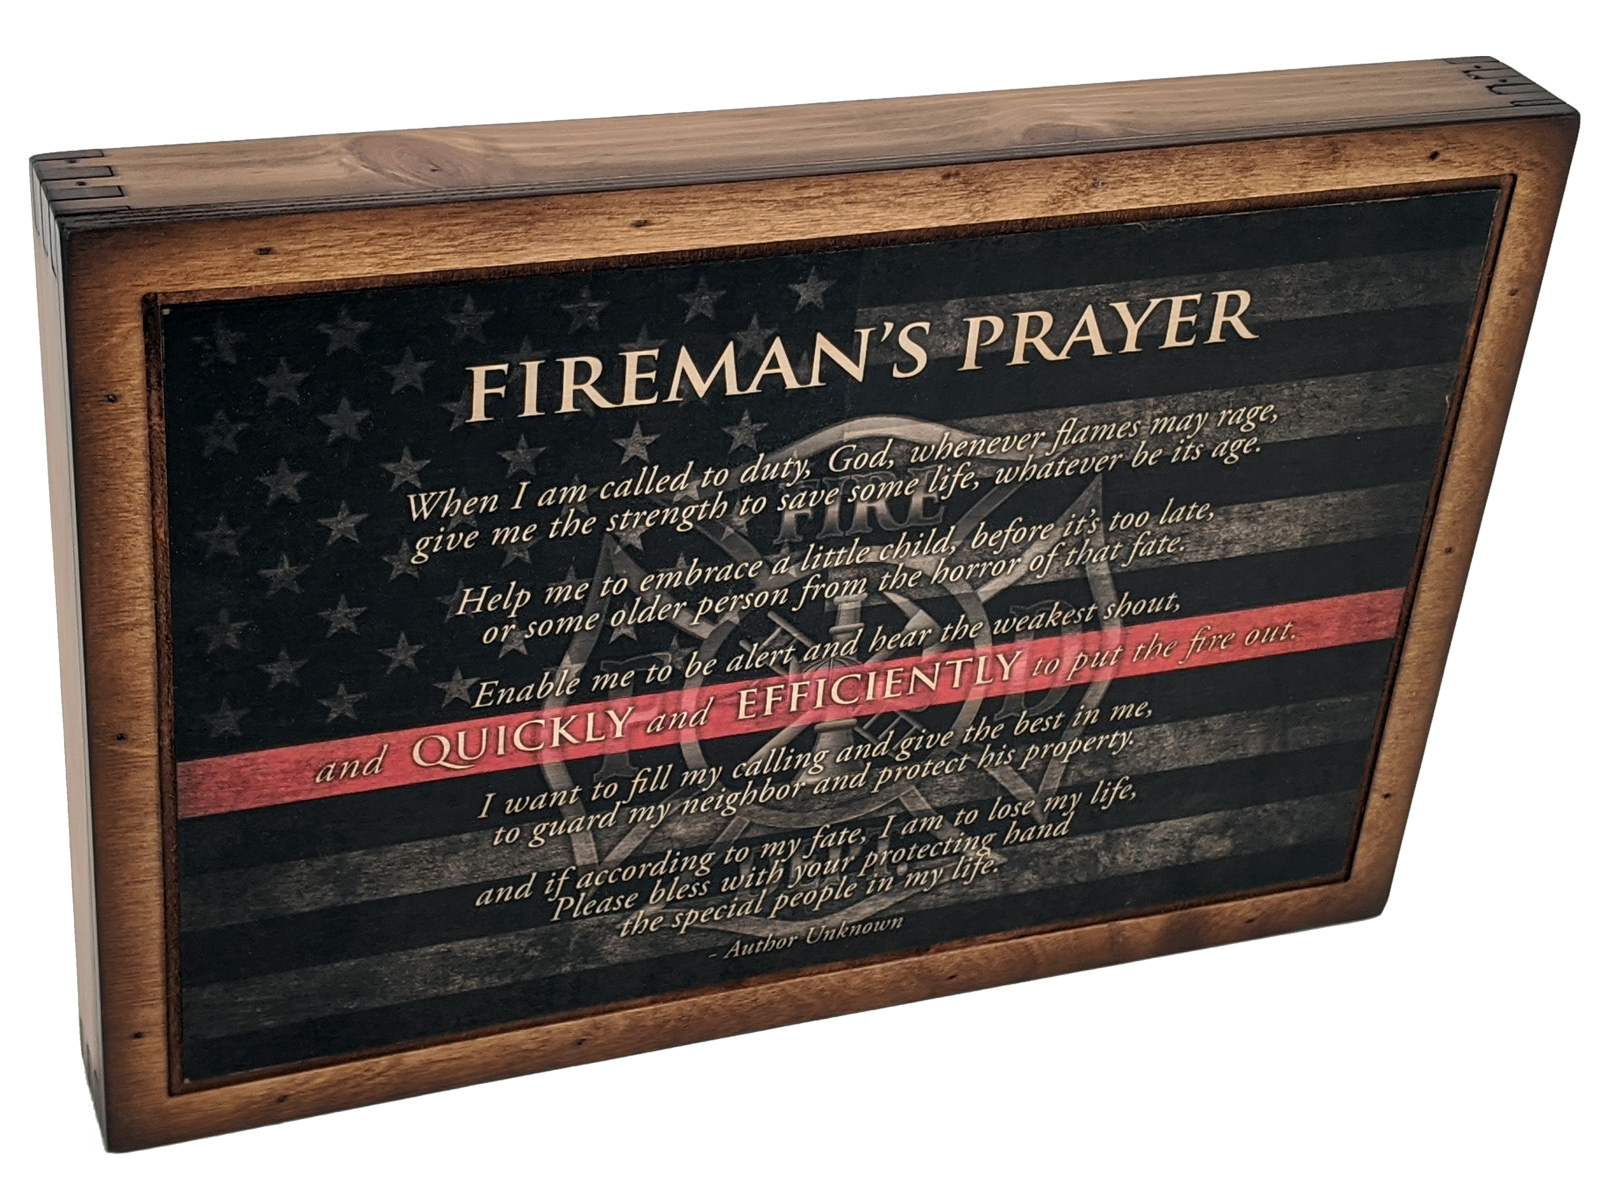 Firefighter Prayer – Wall Art Intended For Most Recently Released A Fireman Prayer Wall Hangings (View 5 of 20)